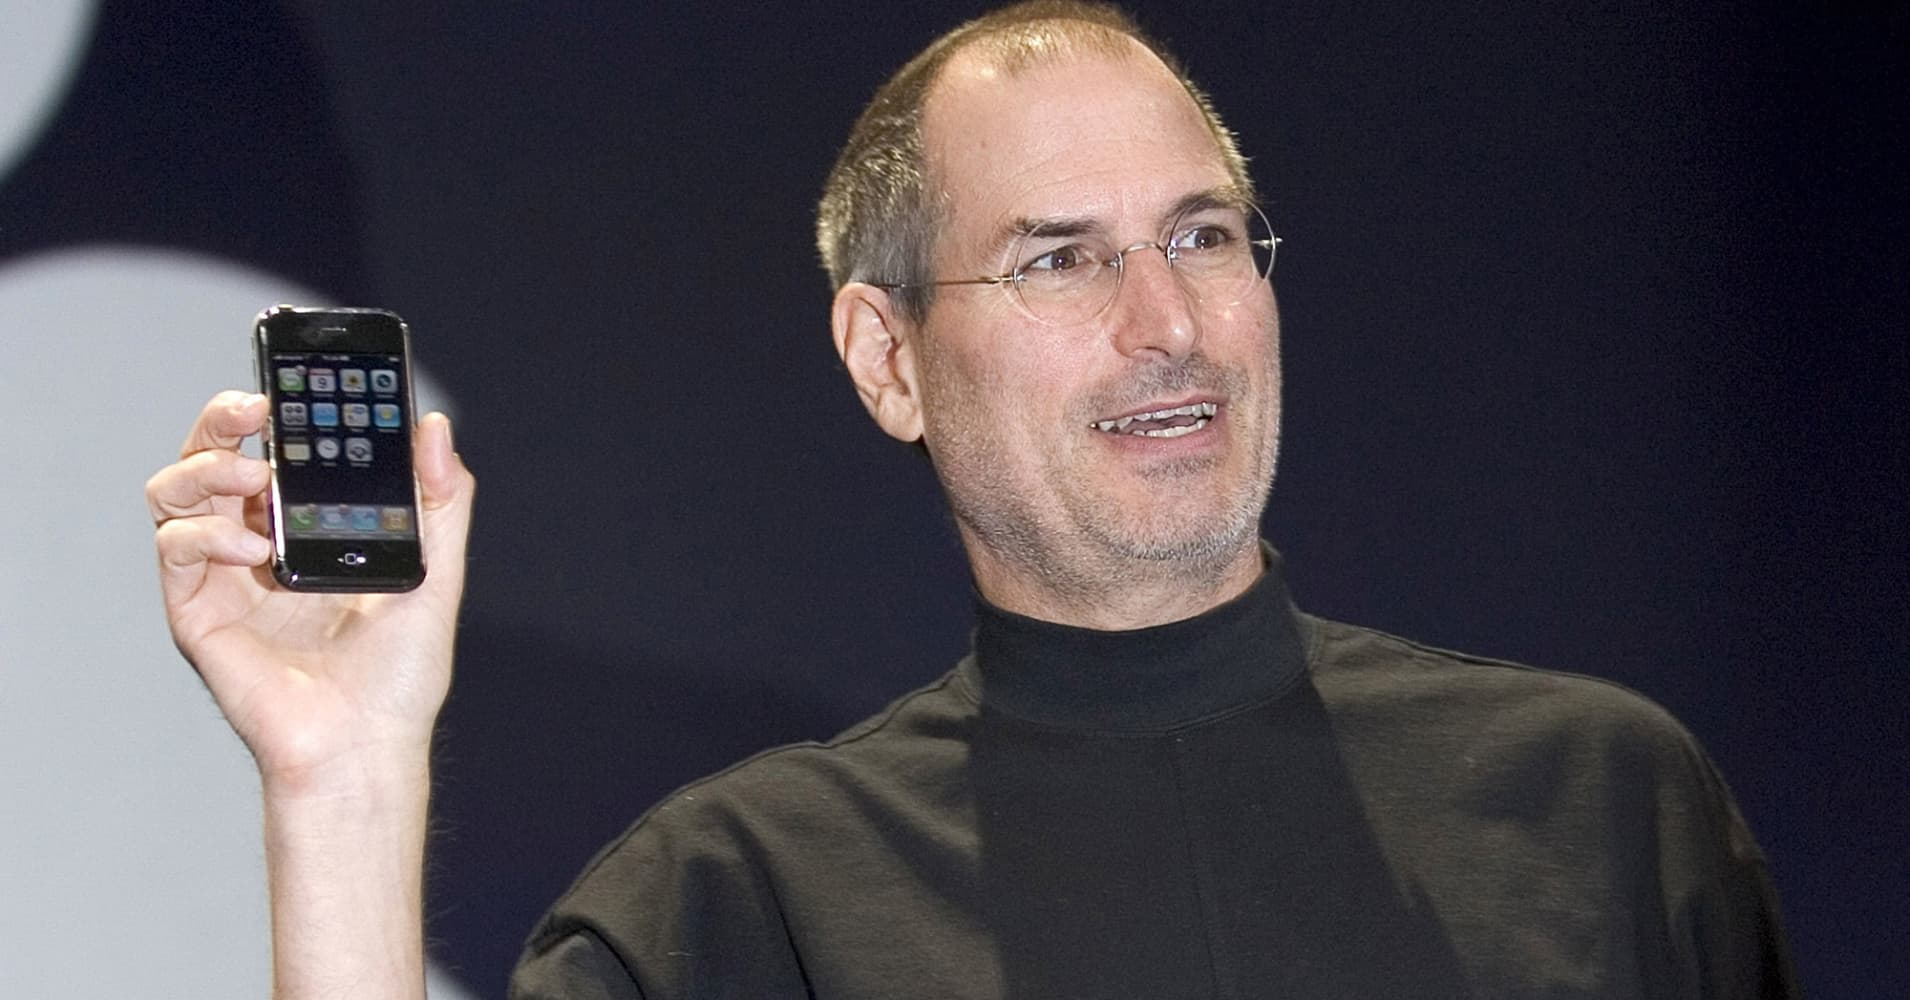 Apple CEO Steve Jobs holds up the new iPhone that was introduced at Macworld on January 9, 2007 in San Francisco, California.